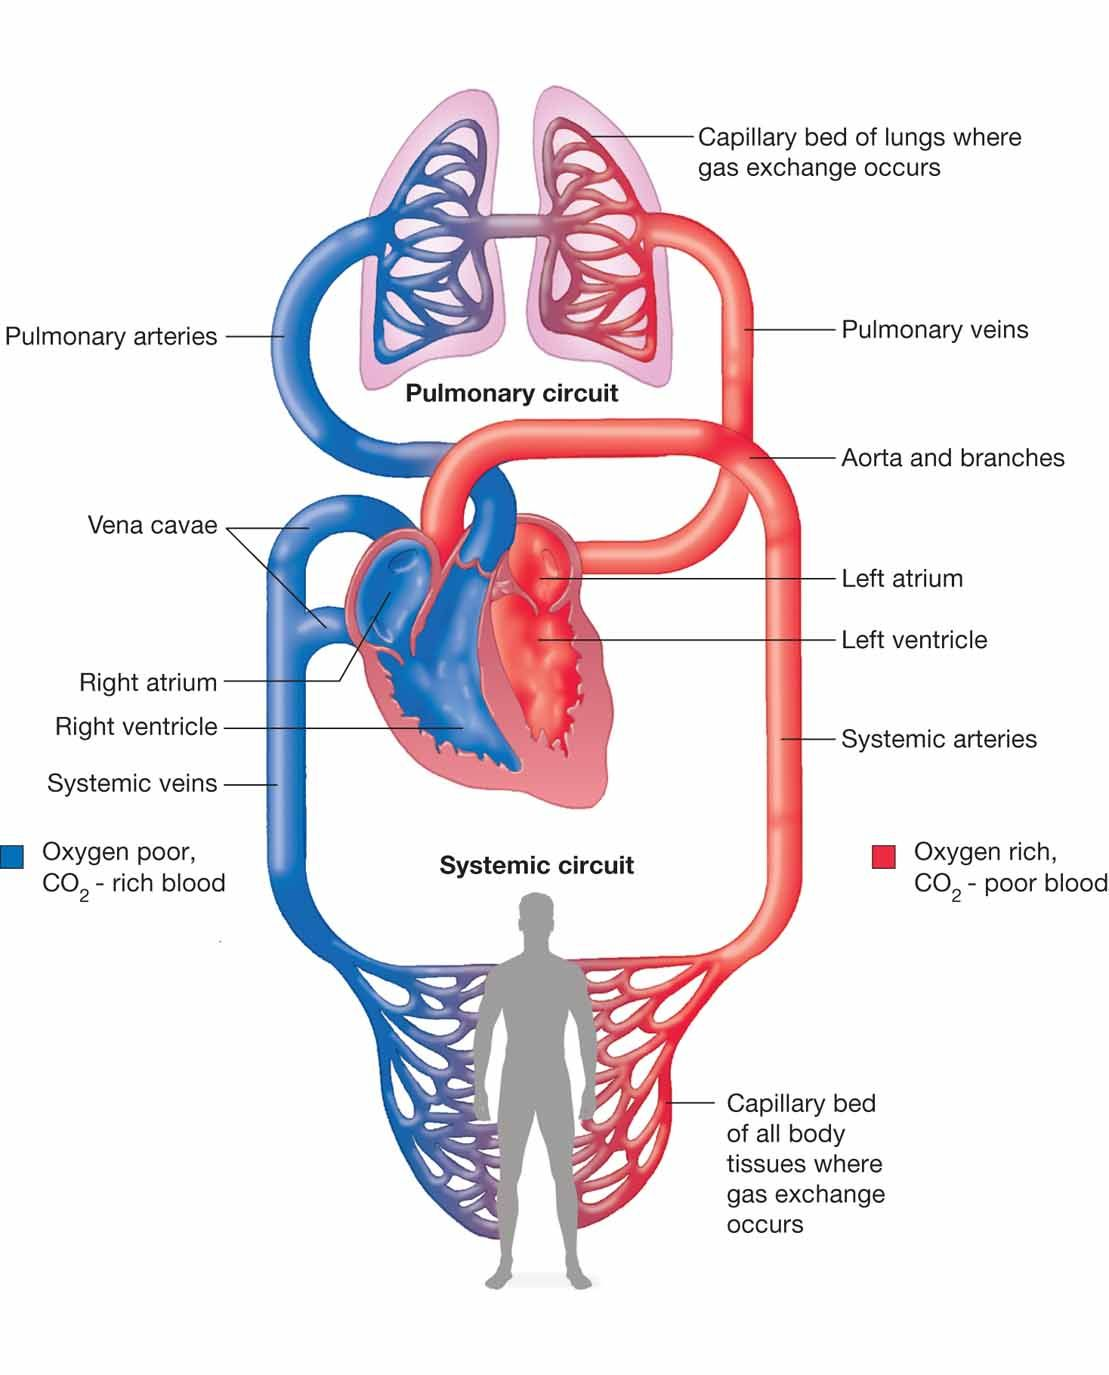 Human circulatory diagram wiring diagram database human circulatory system diagram photos systemic and pulmonary rh pinterest com human circulation diagram human circulation diagram ccuart